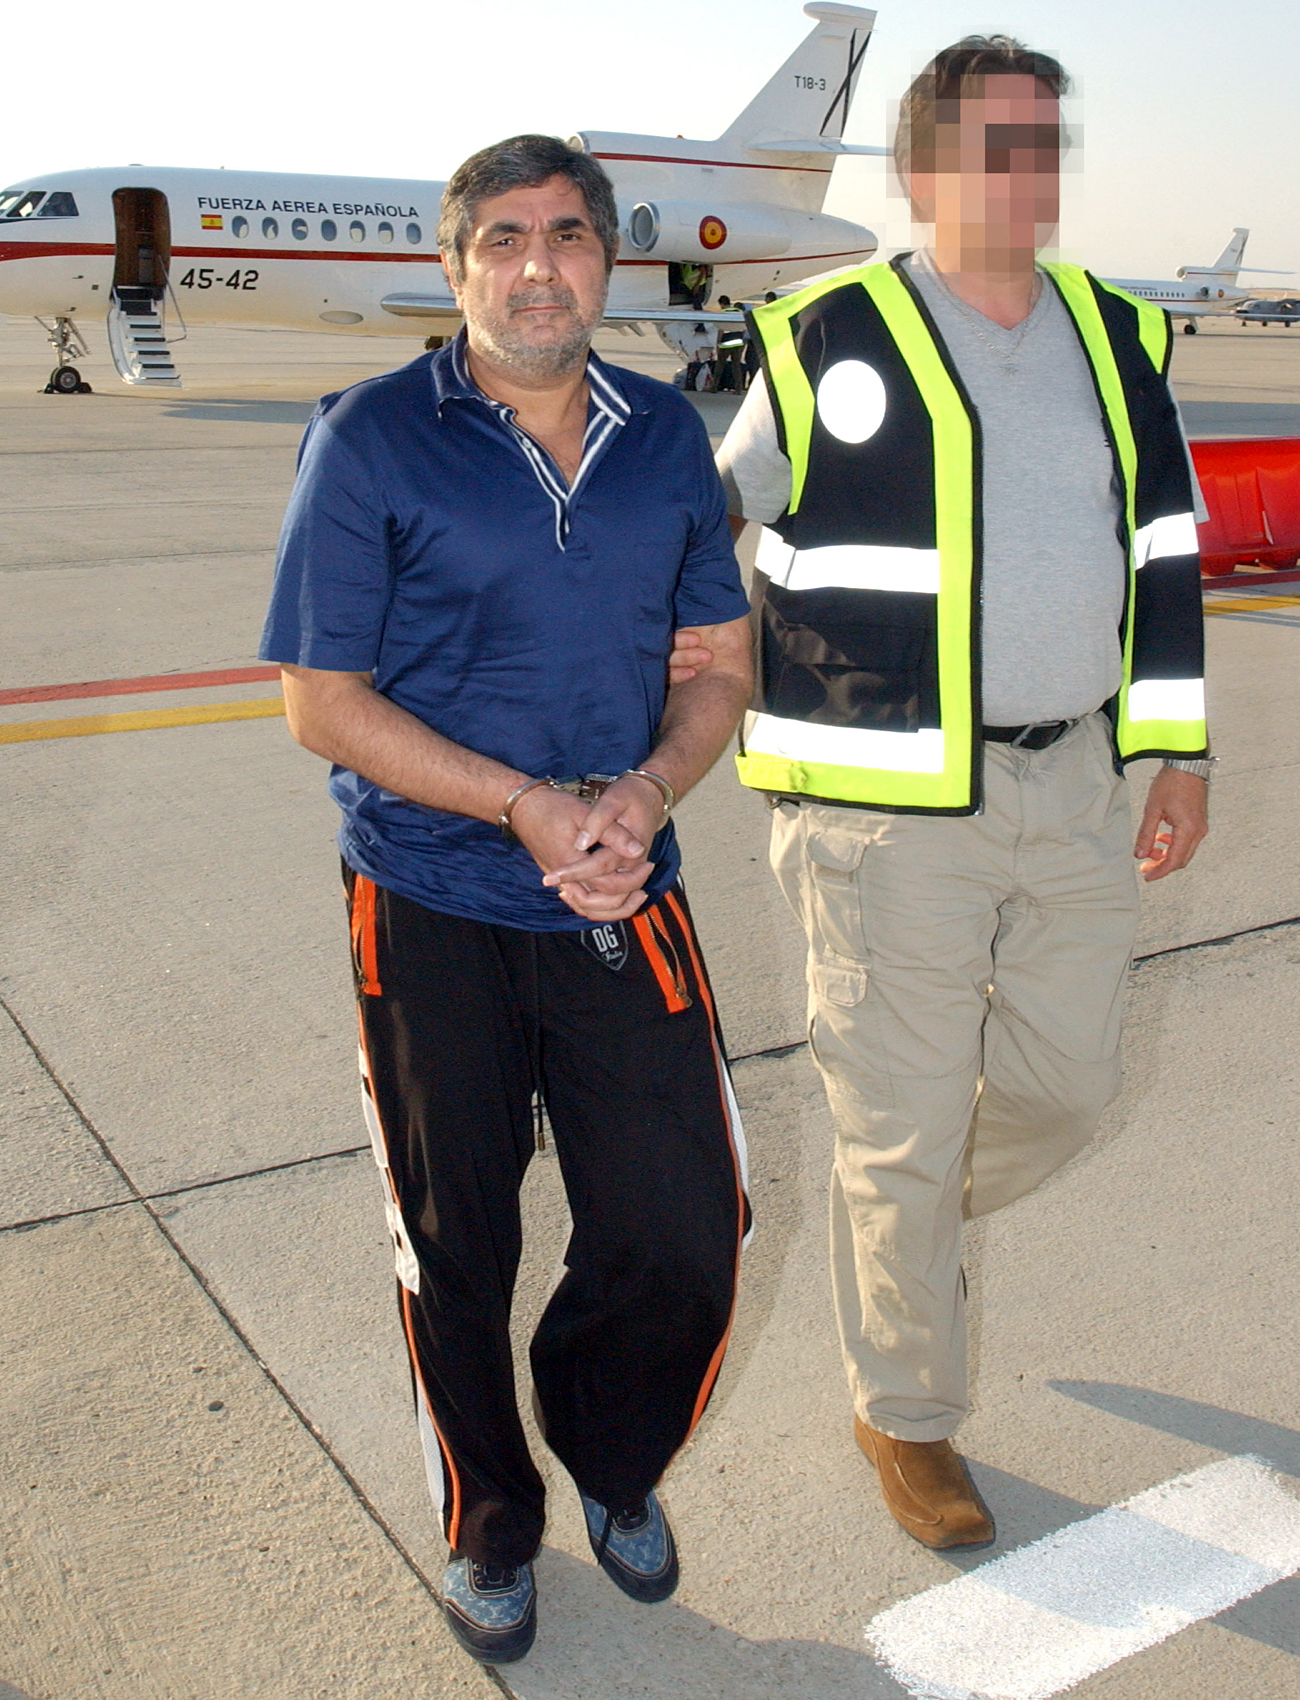 Kalashov fled Spain in 2005 after police blocked hundreds of bank accounts, seized dozens of luxury cars, and confiscated villas in a crackdown on mafias from former Soviet republics. Photo: Kalashov is escorted on arrival at the Torrejon military air base outside Madrid in June 10, 2006.